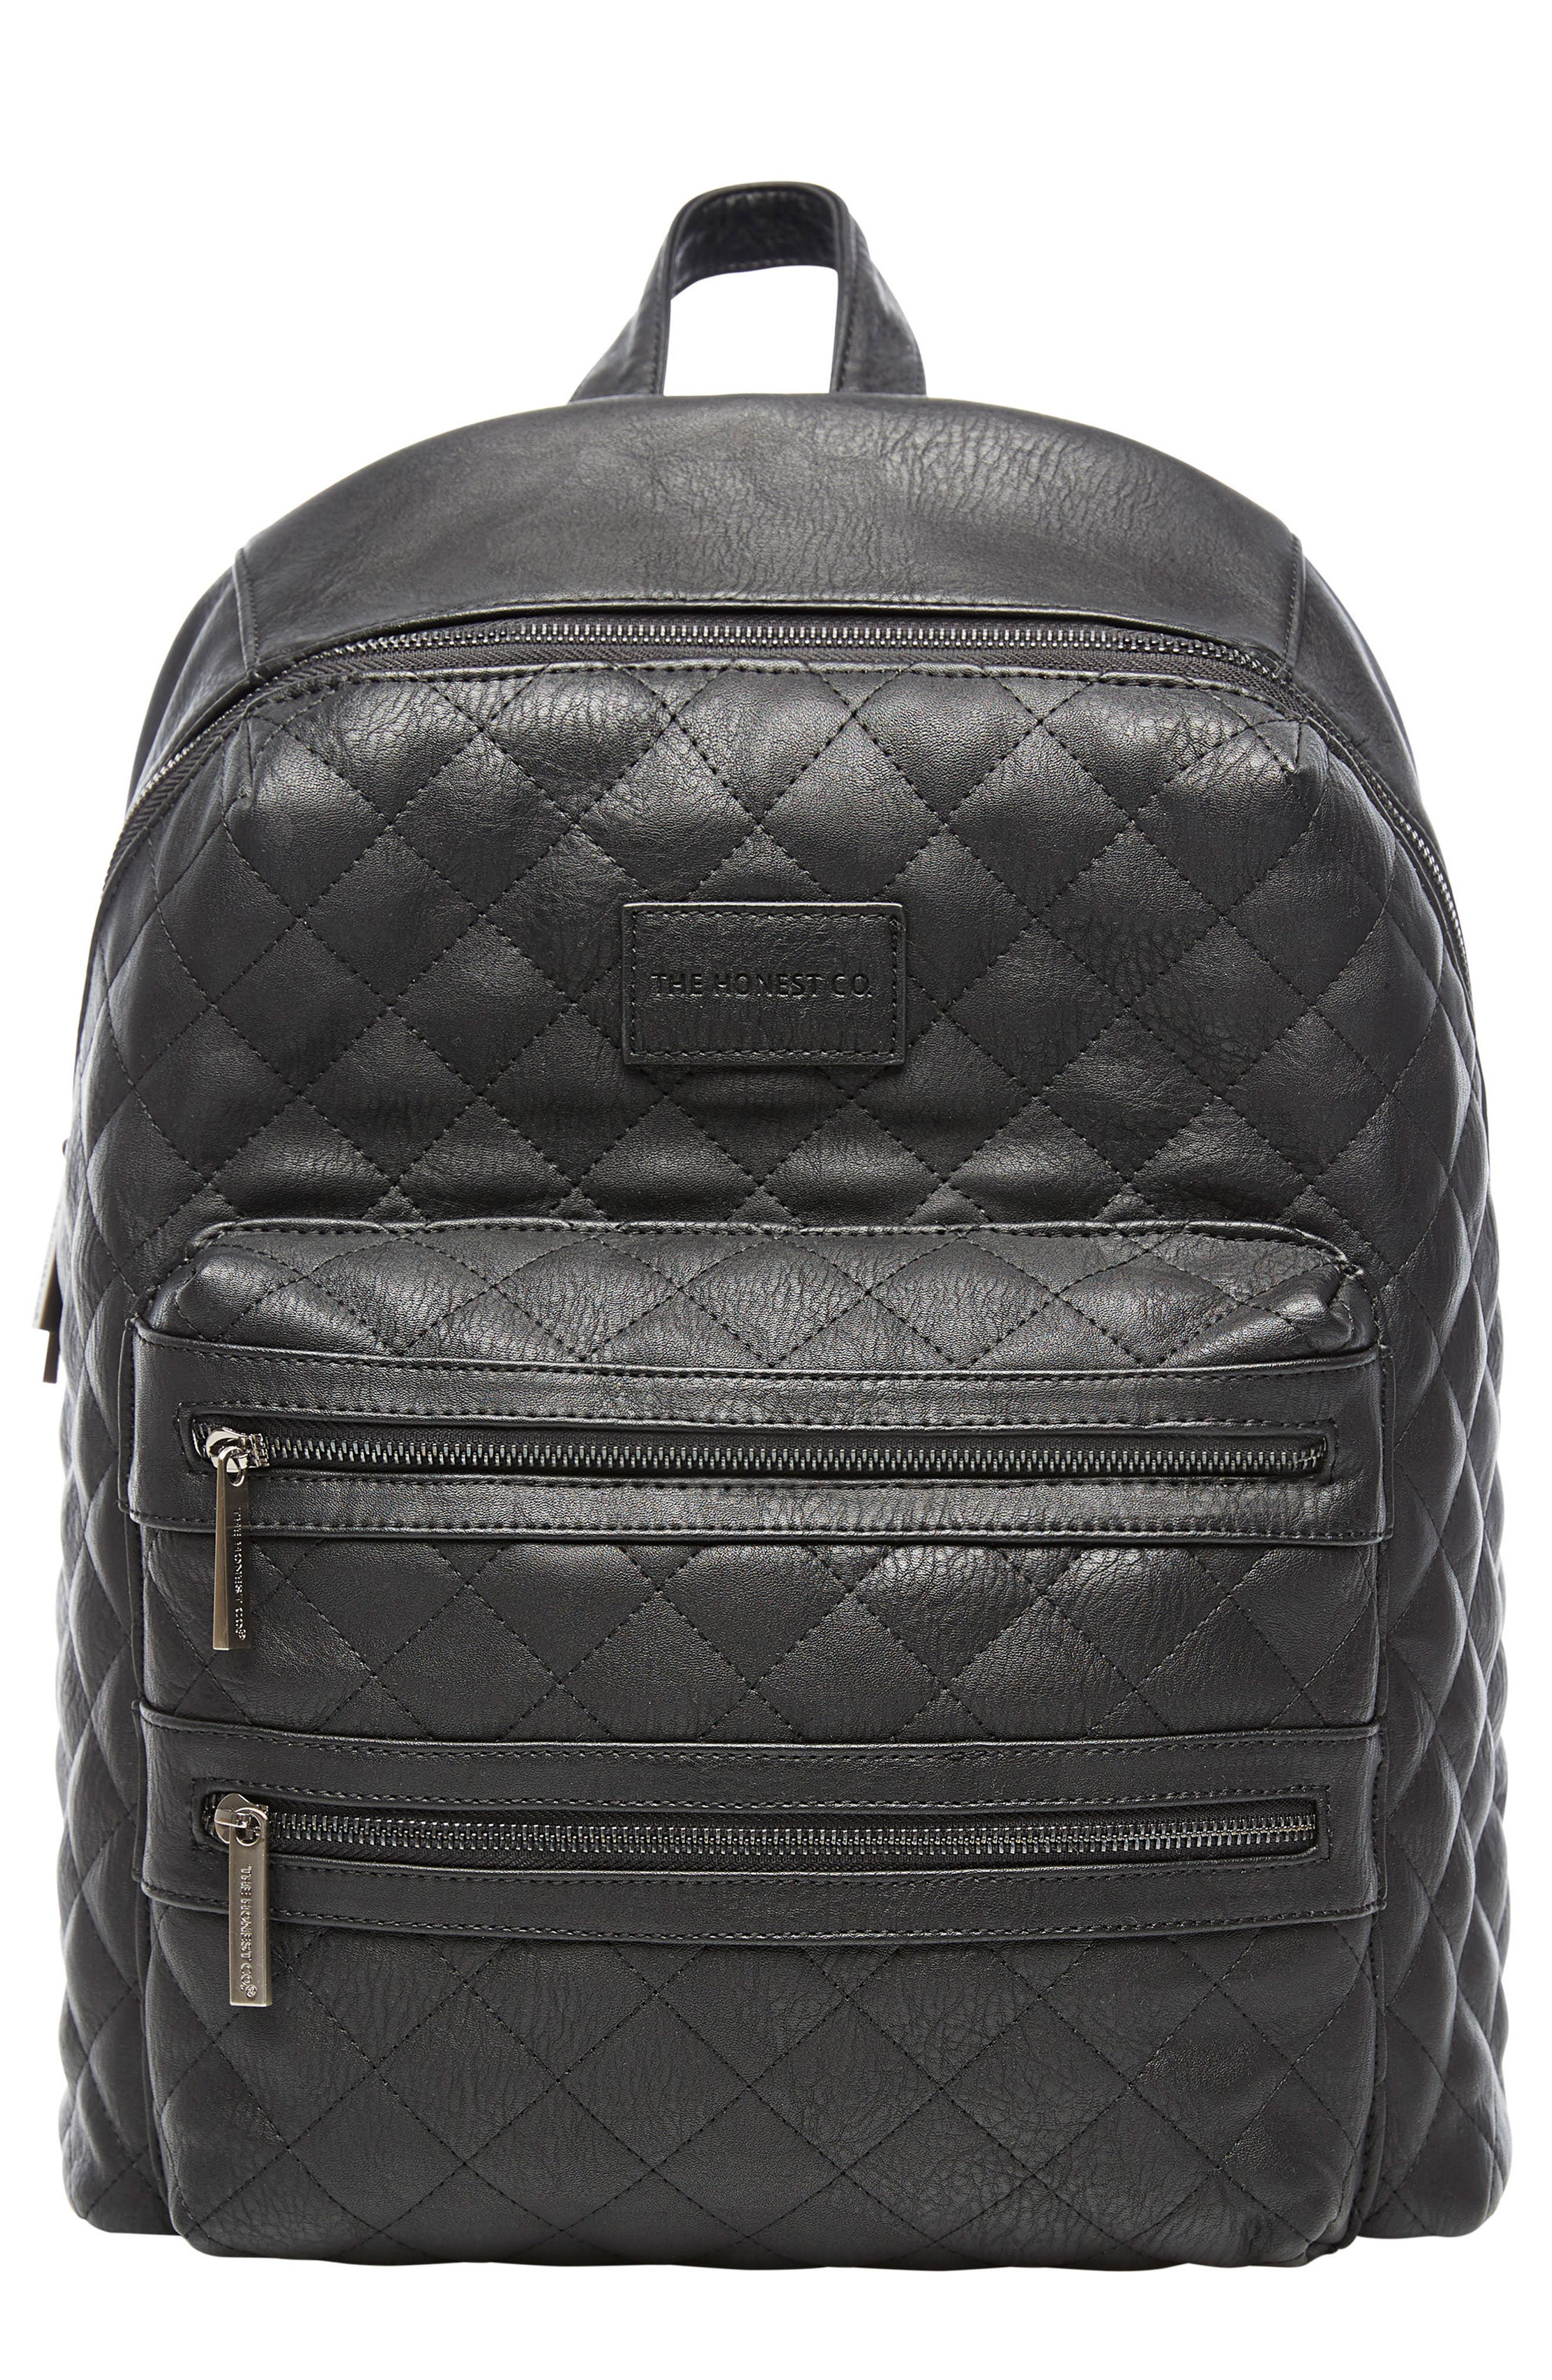 City Quilted Faux Leather Diaper Backpack,                         Main,                         color, 001